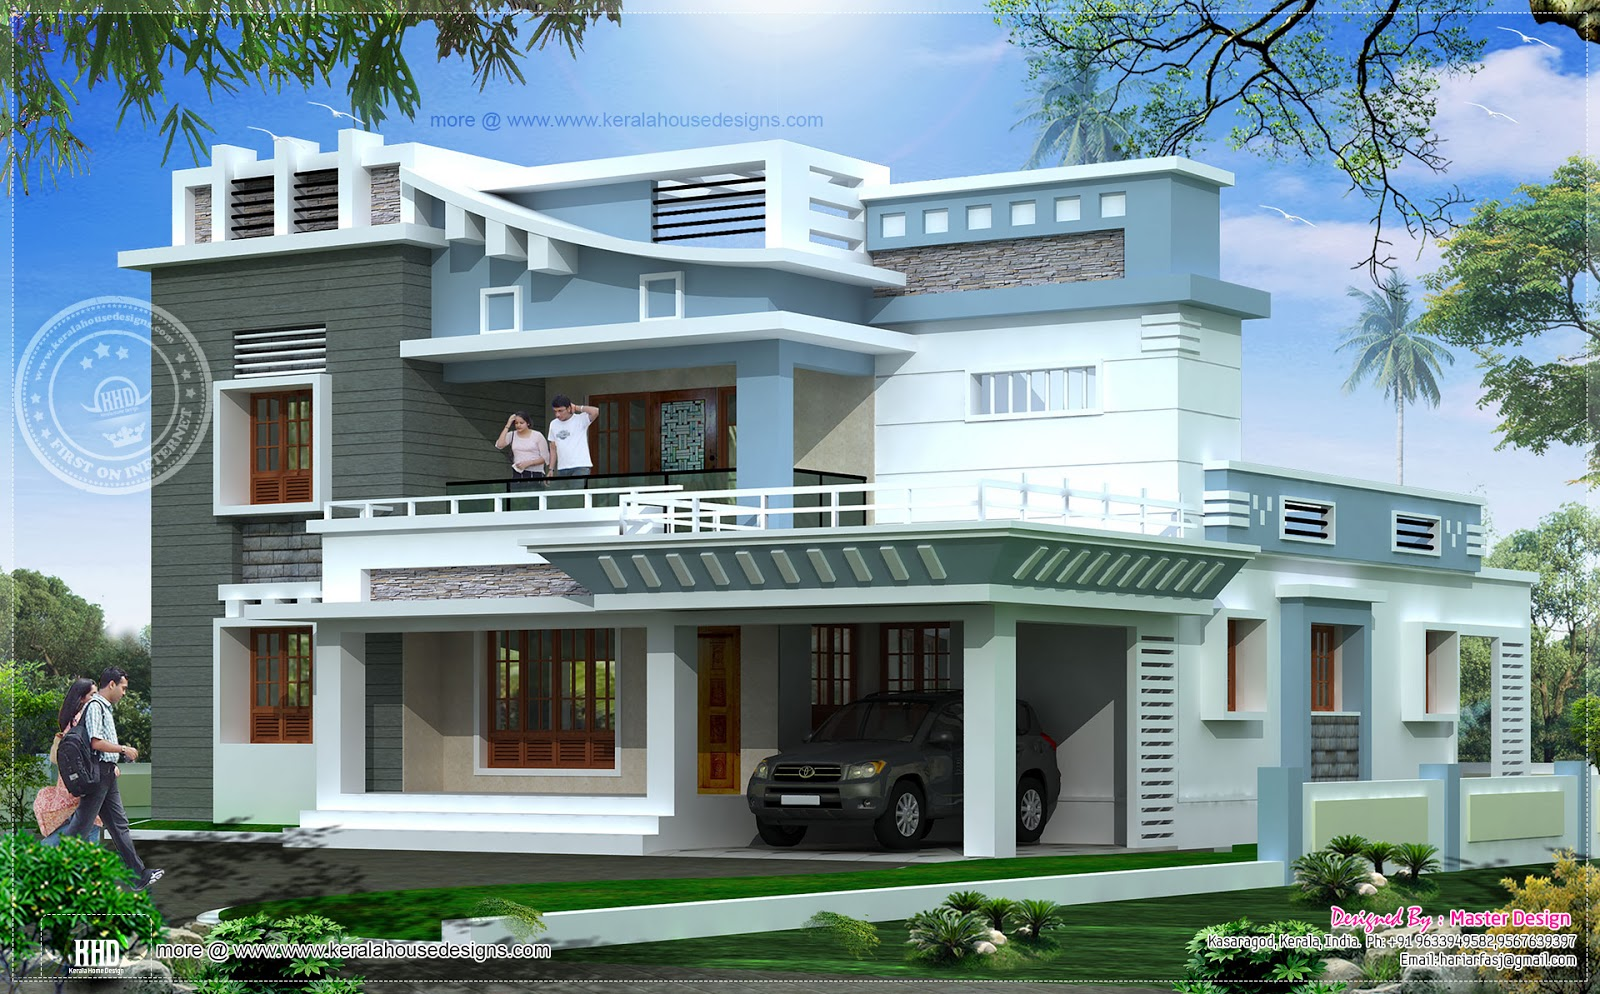 2547 square feet exterior home elevation house design plans for Exterior home designs ideas